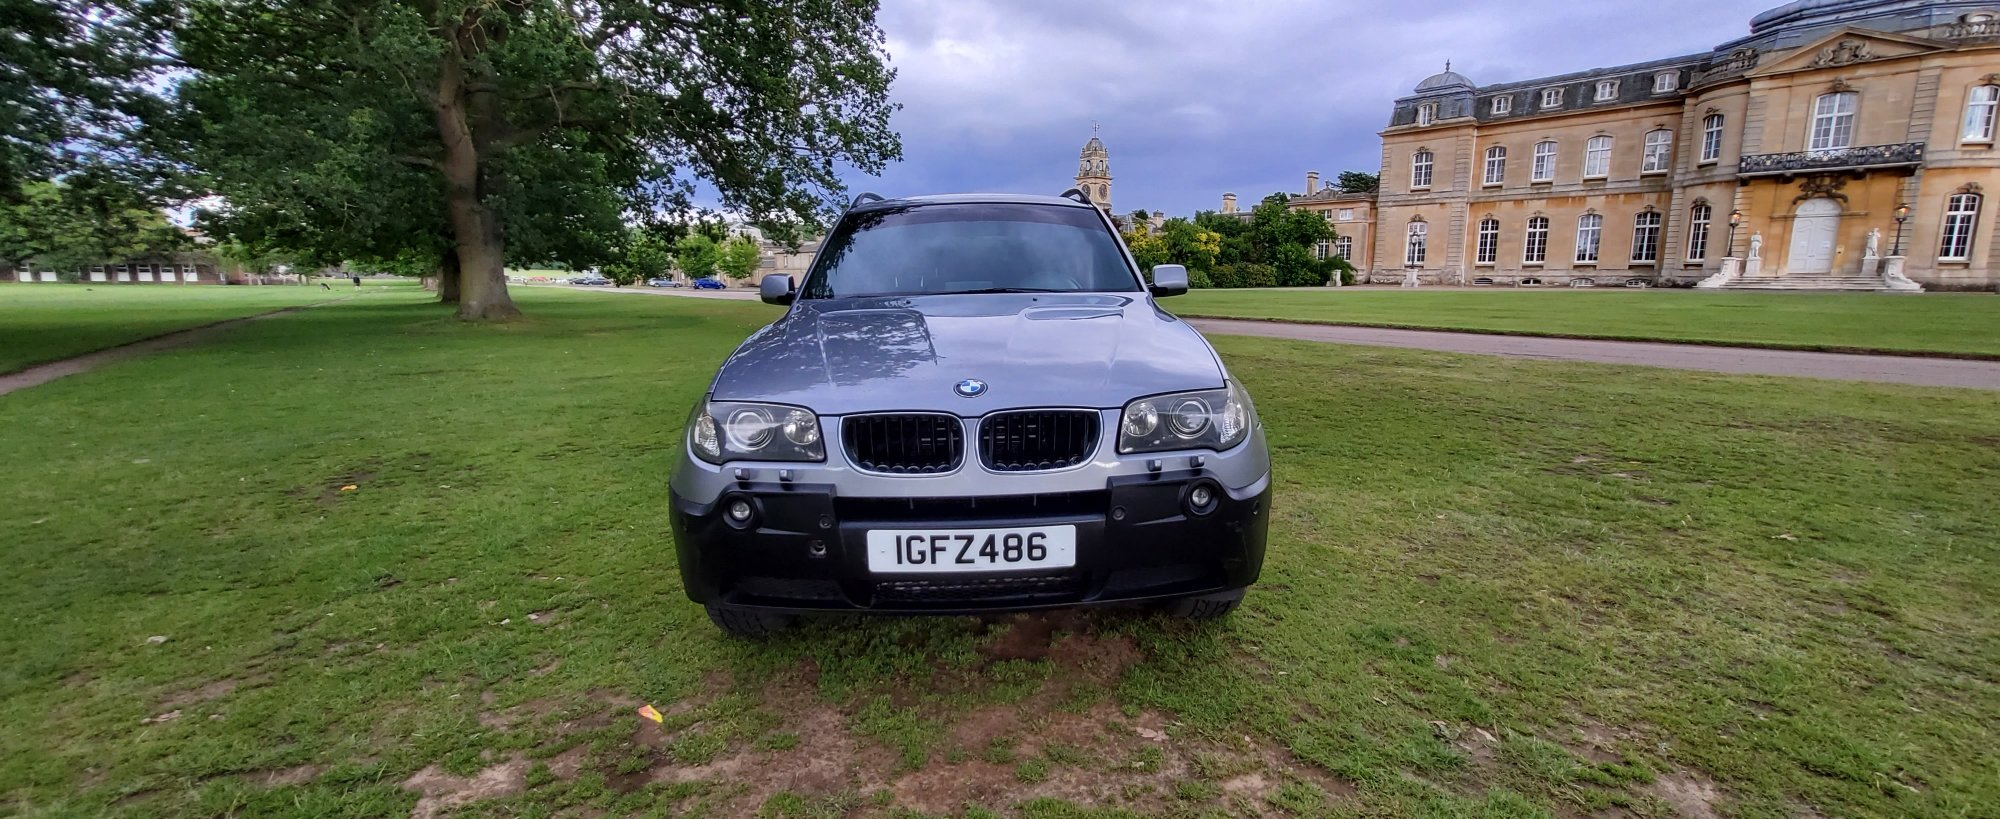 2004 LHD BMW X3, 3.0d Sport 5dr, Auto, Turbo,LEFT HAND DRIVE For Sale (picture 2 of 6)